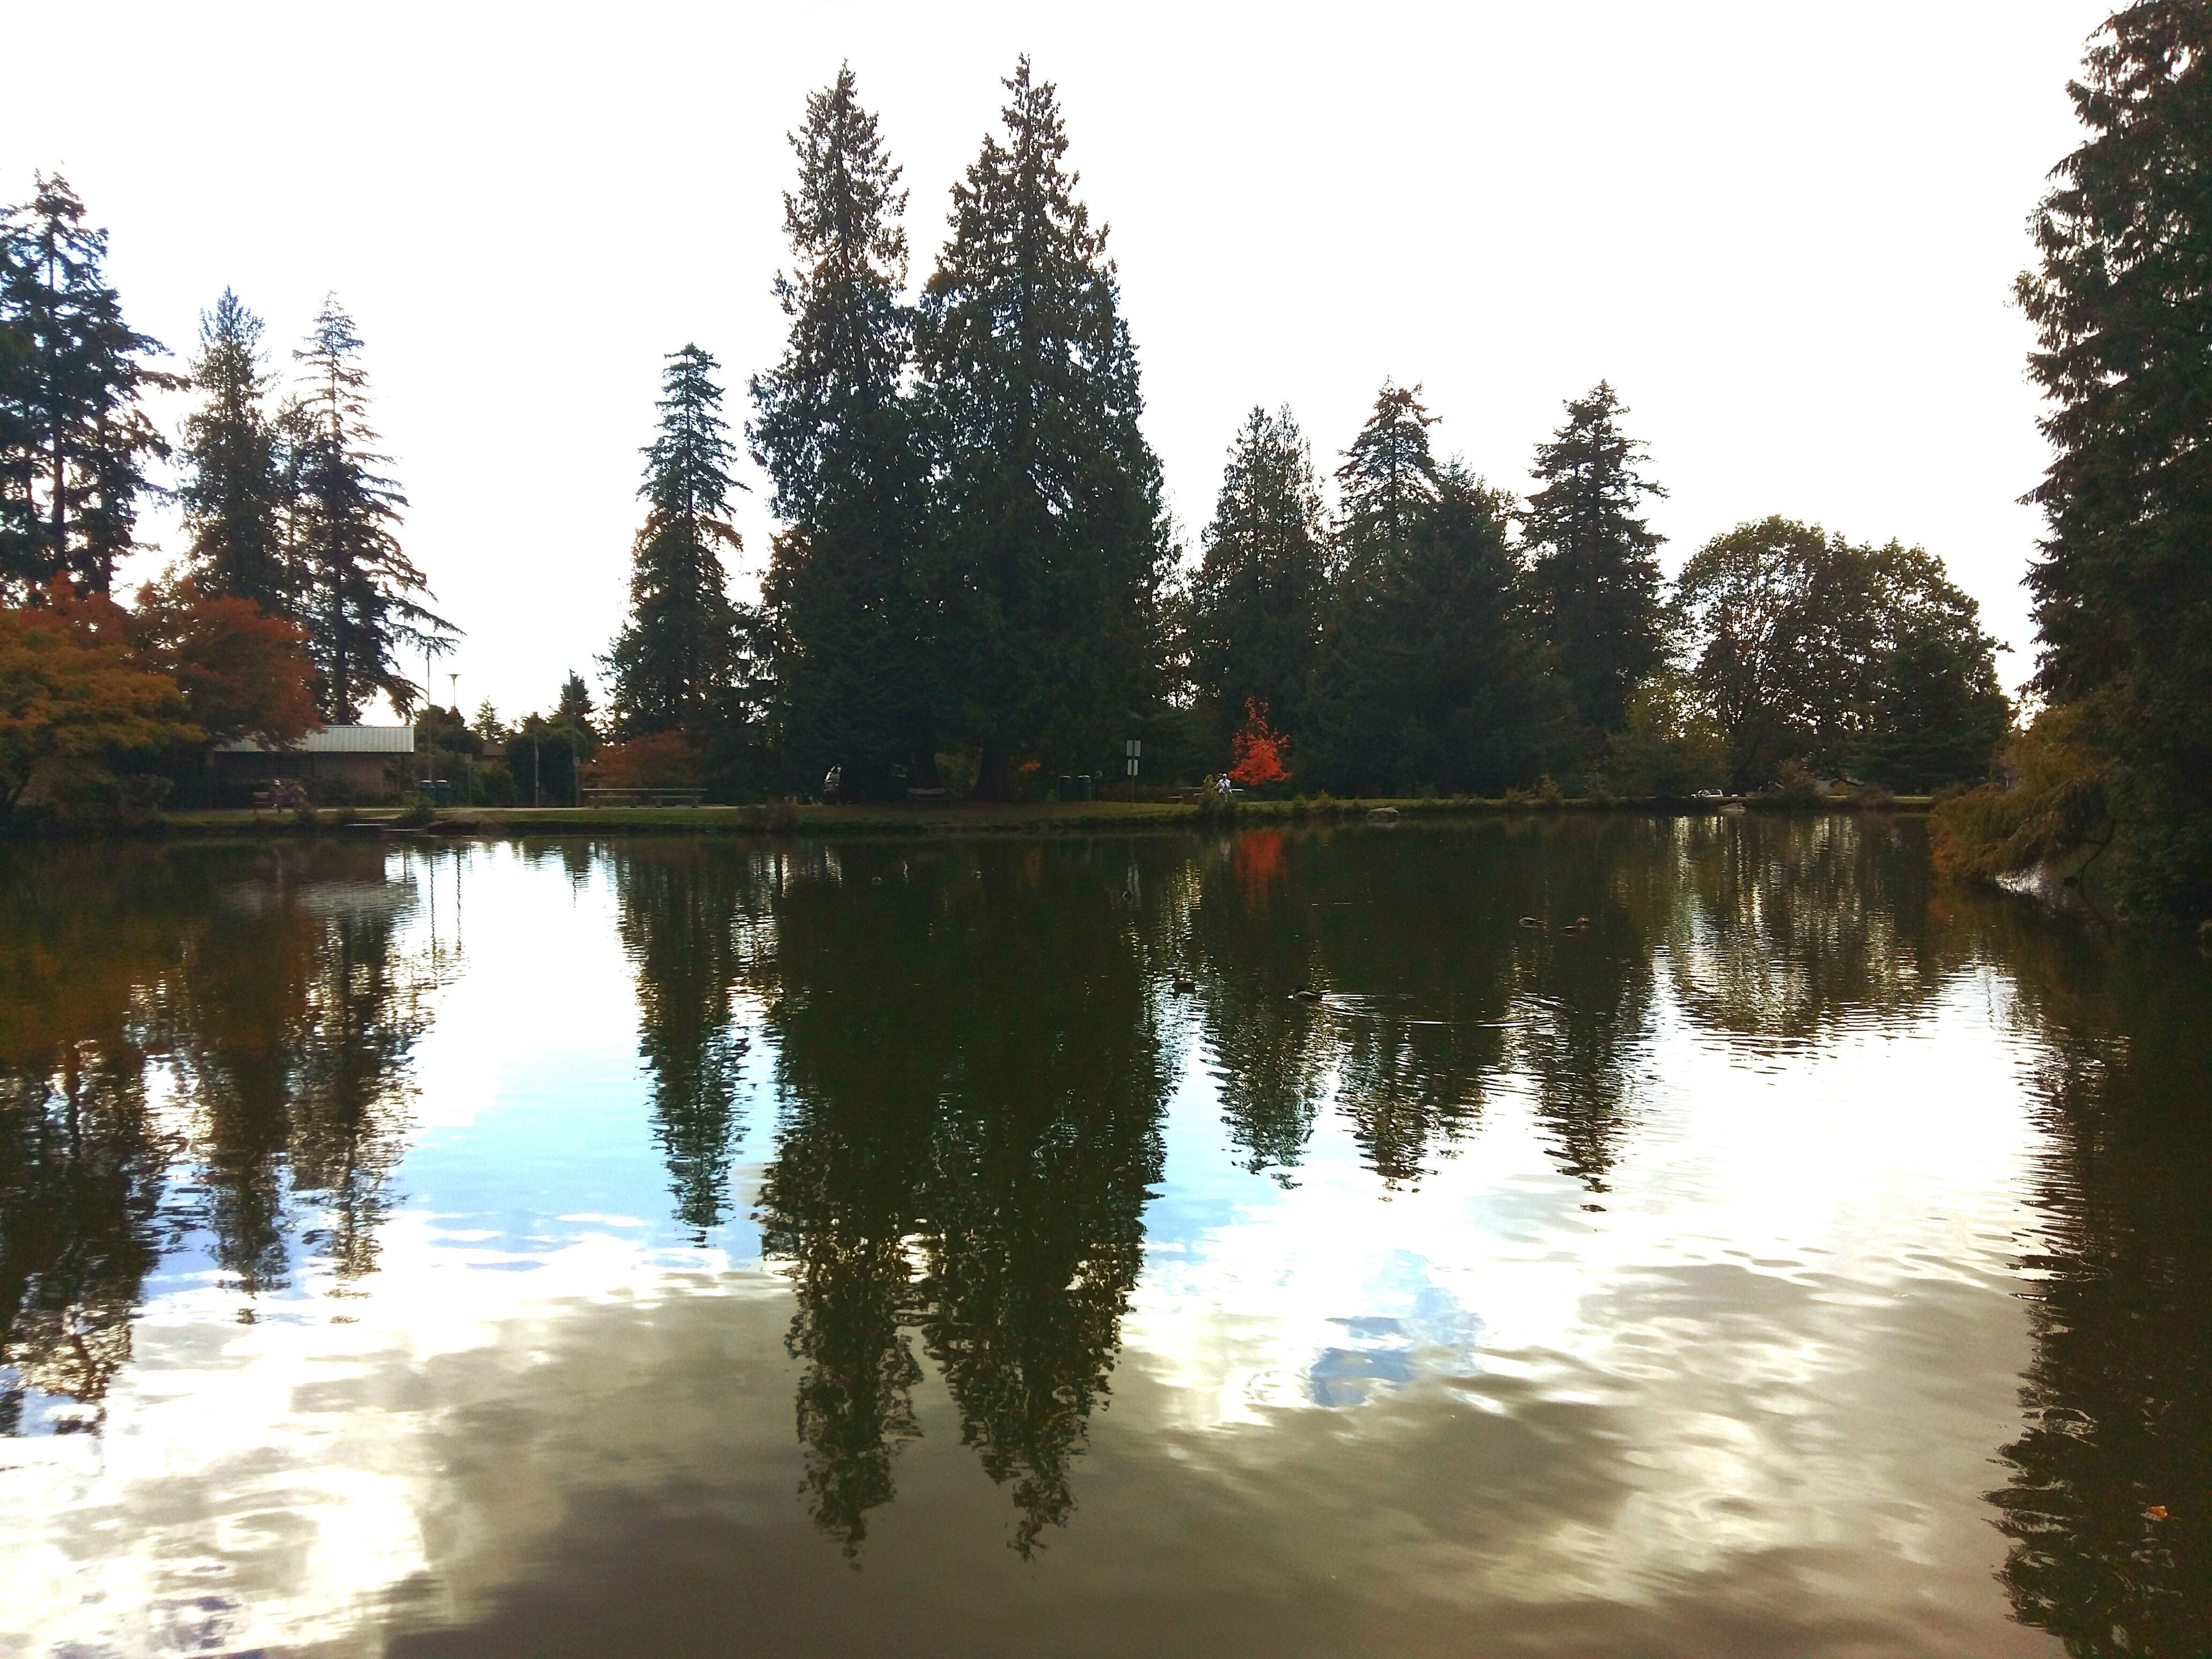 reflection, water, tree, sunset, lake, sky, nature, outdoors, no people, day, tranquility, scenics